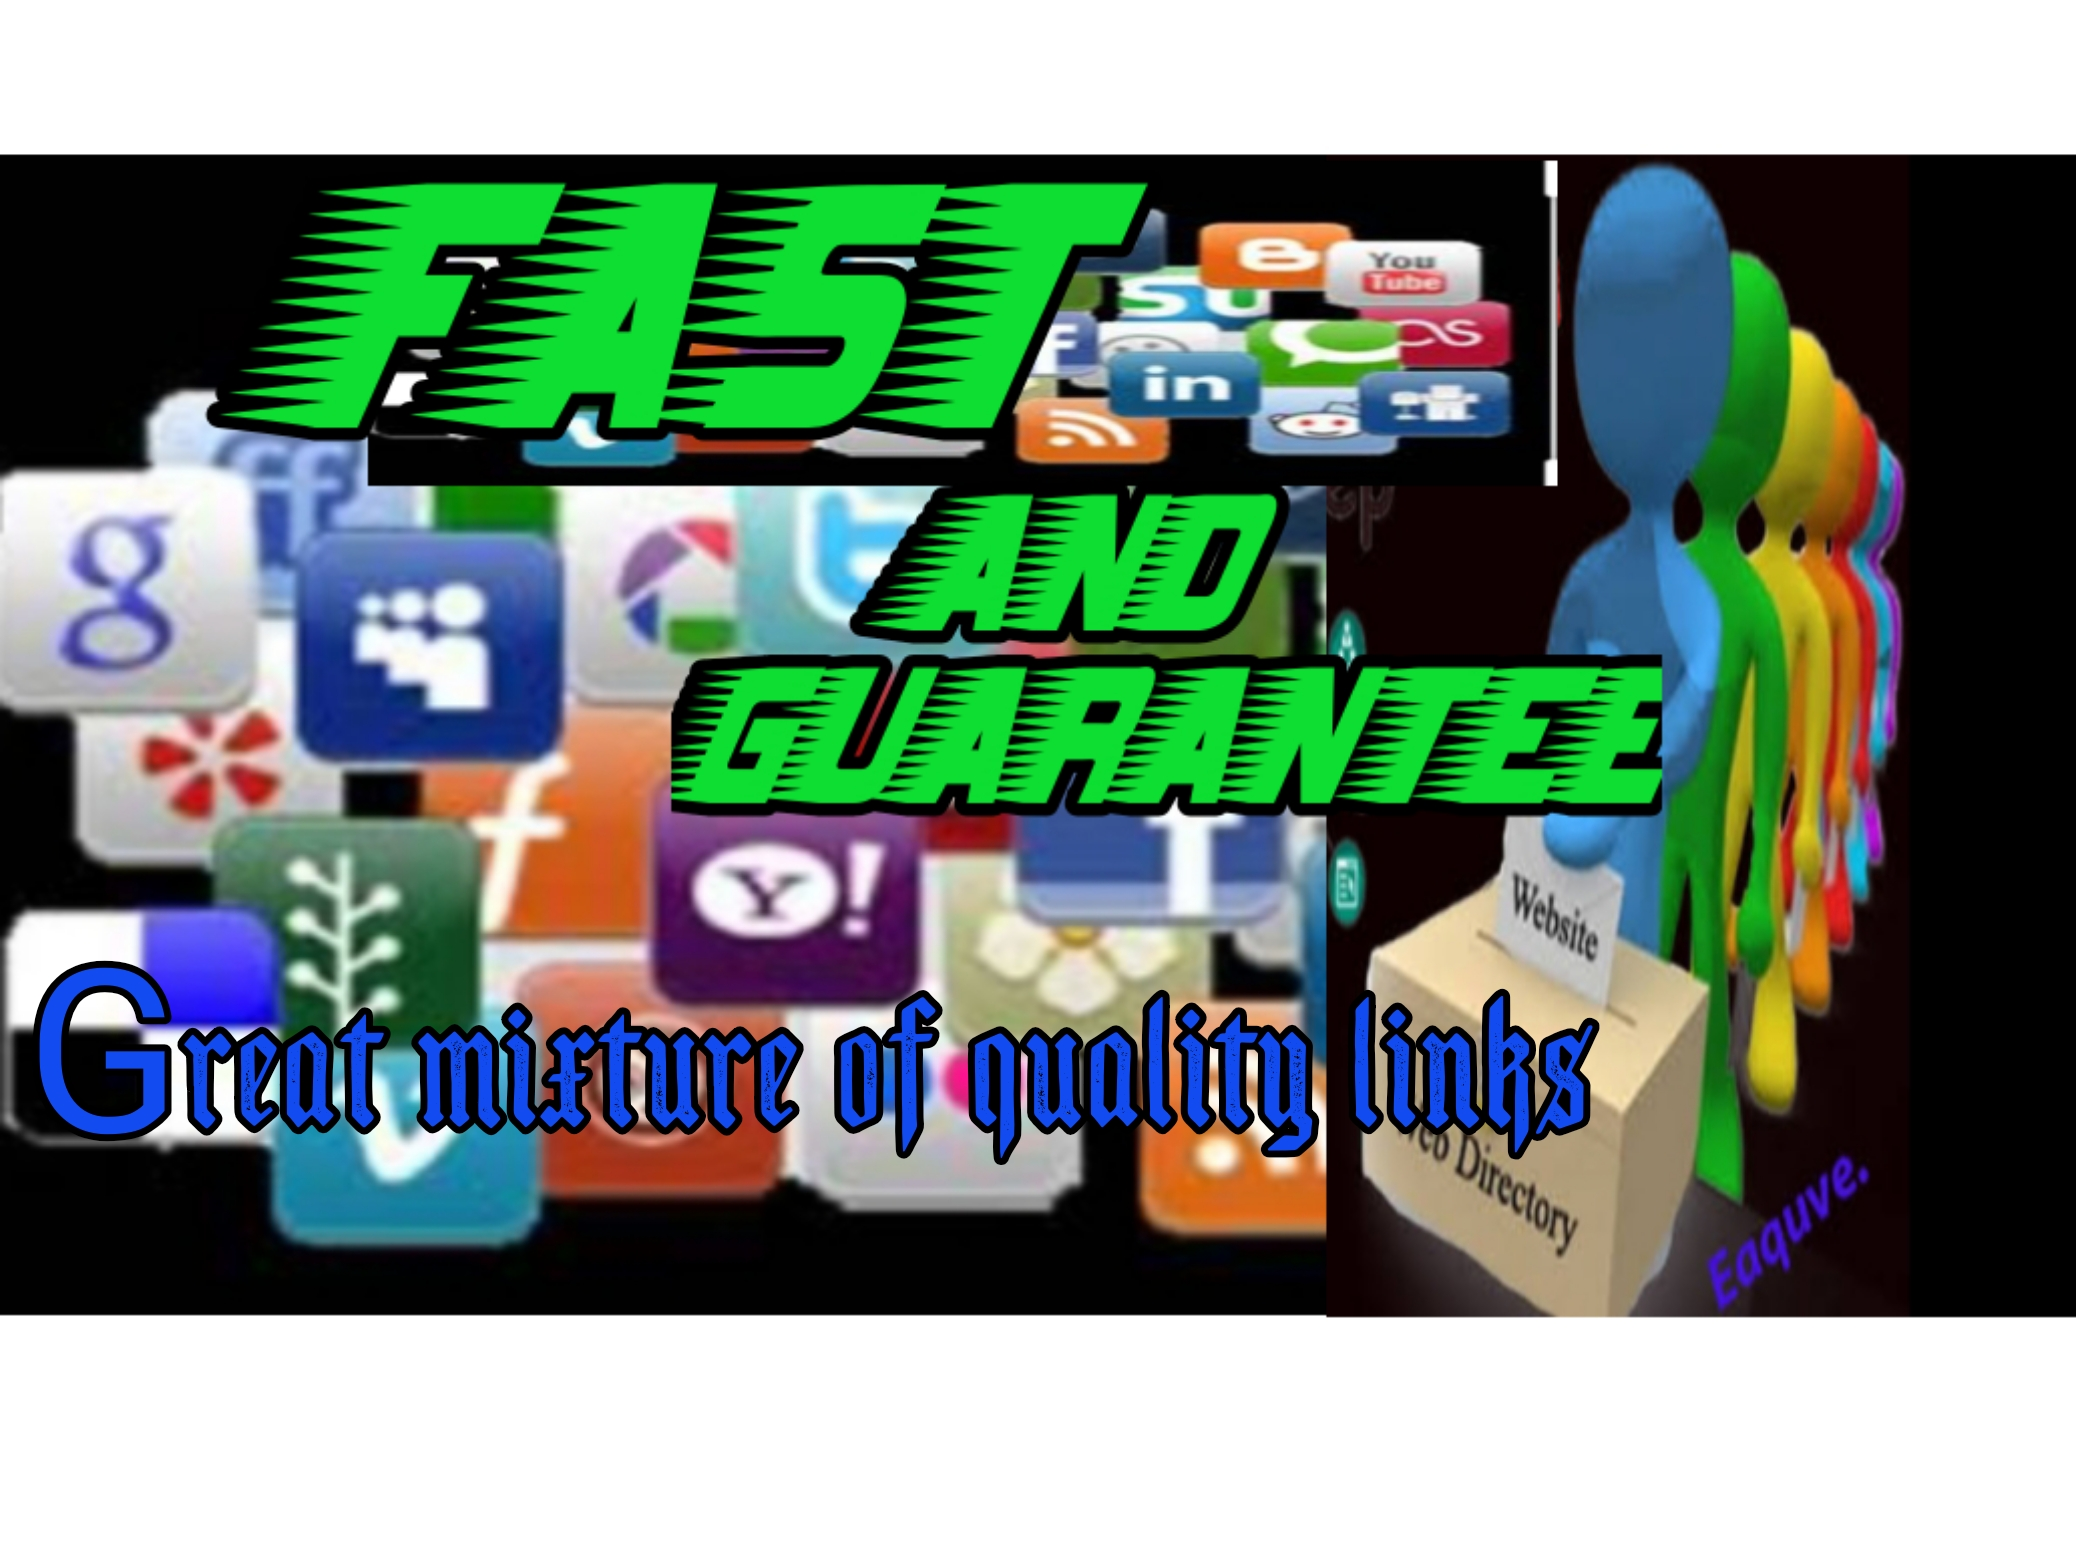 Fast and guarantee service. Great mixture of quality links.